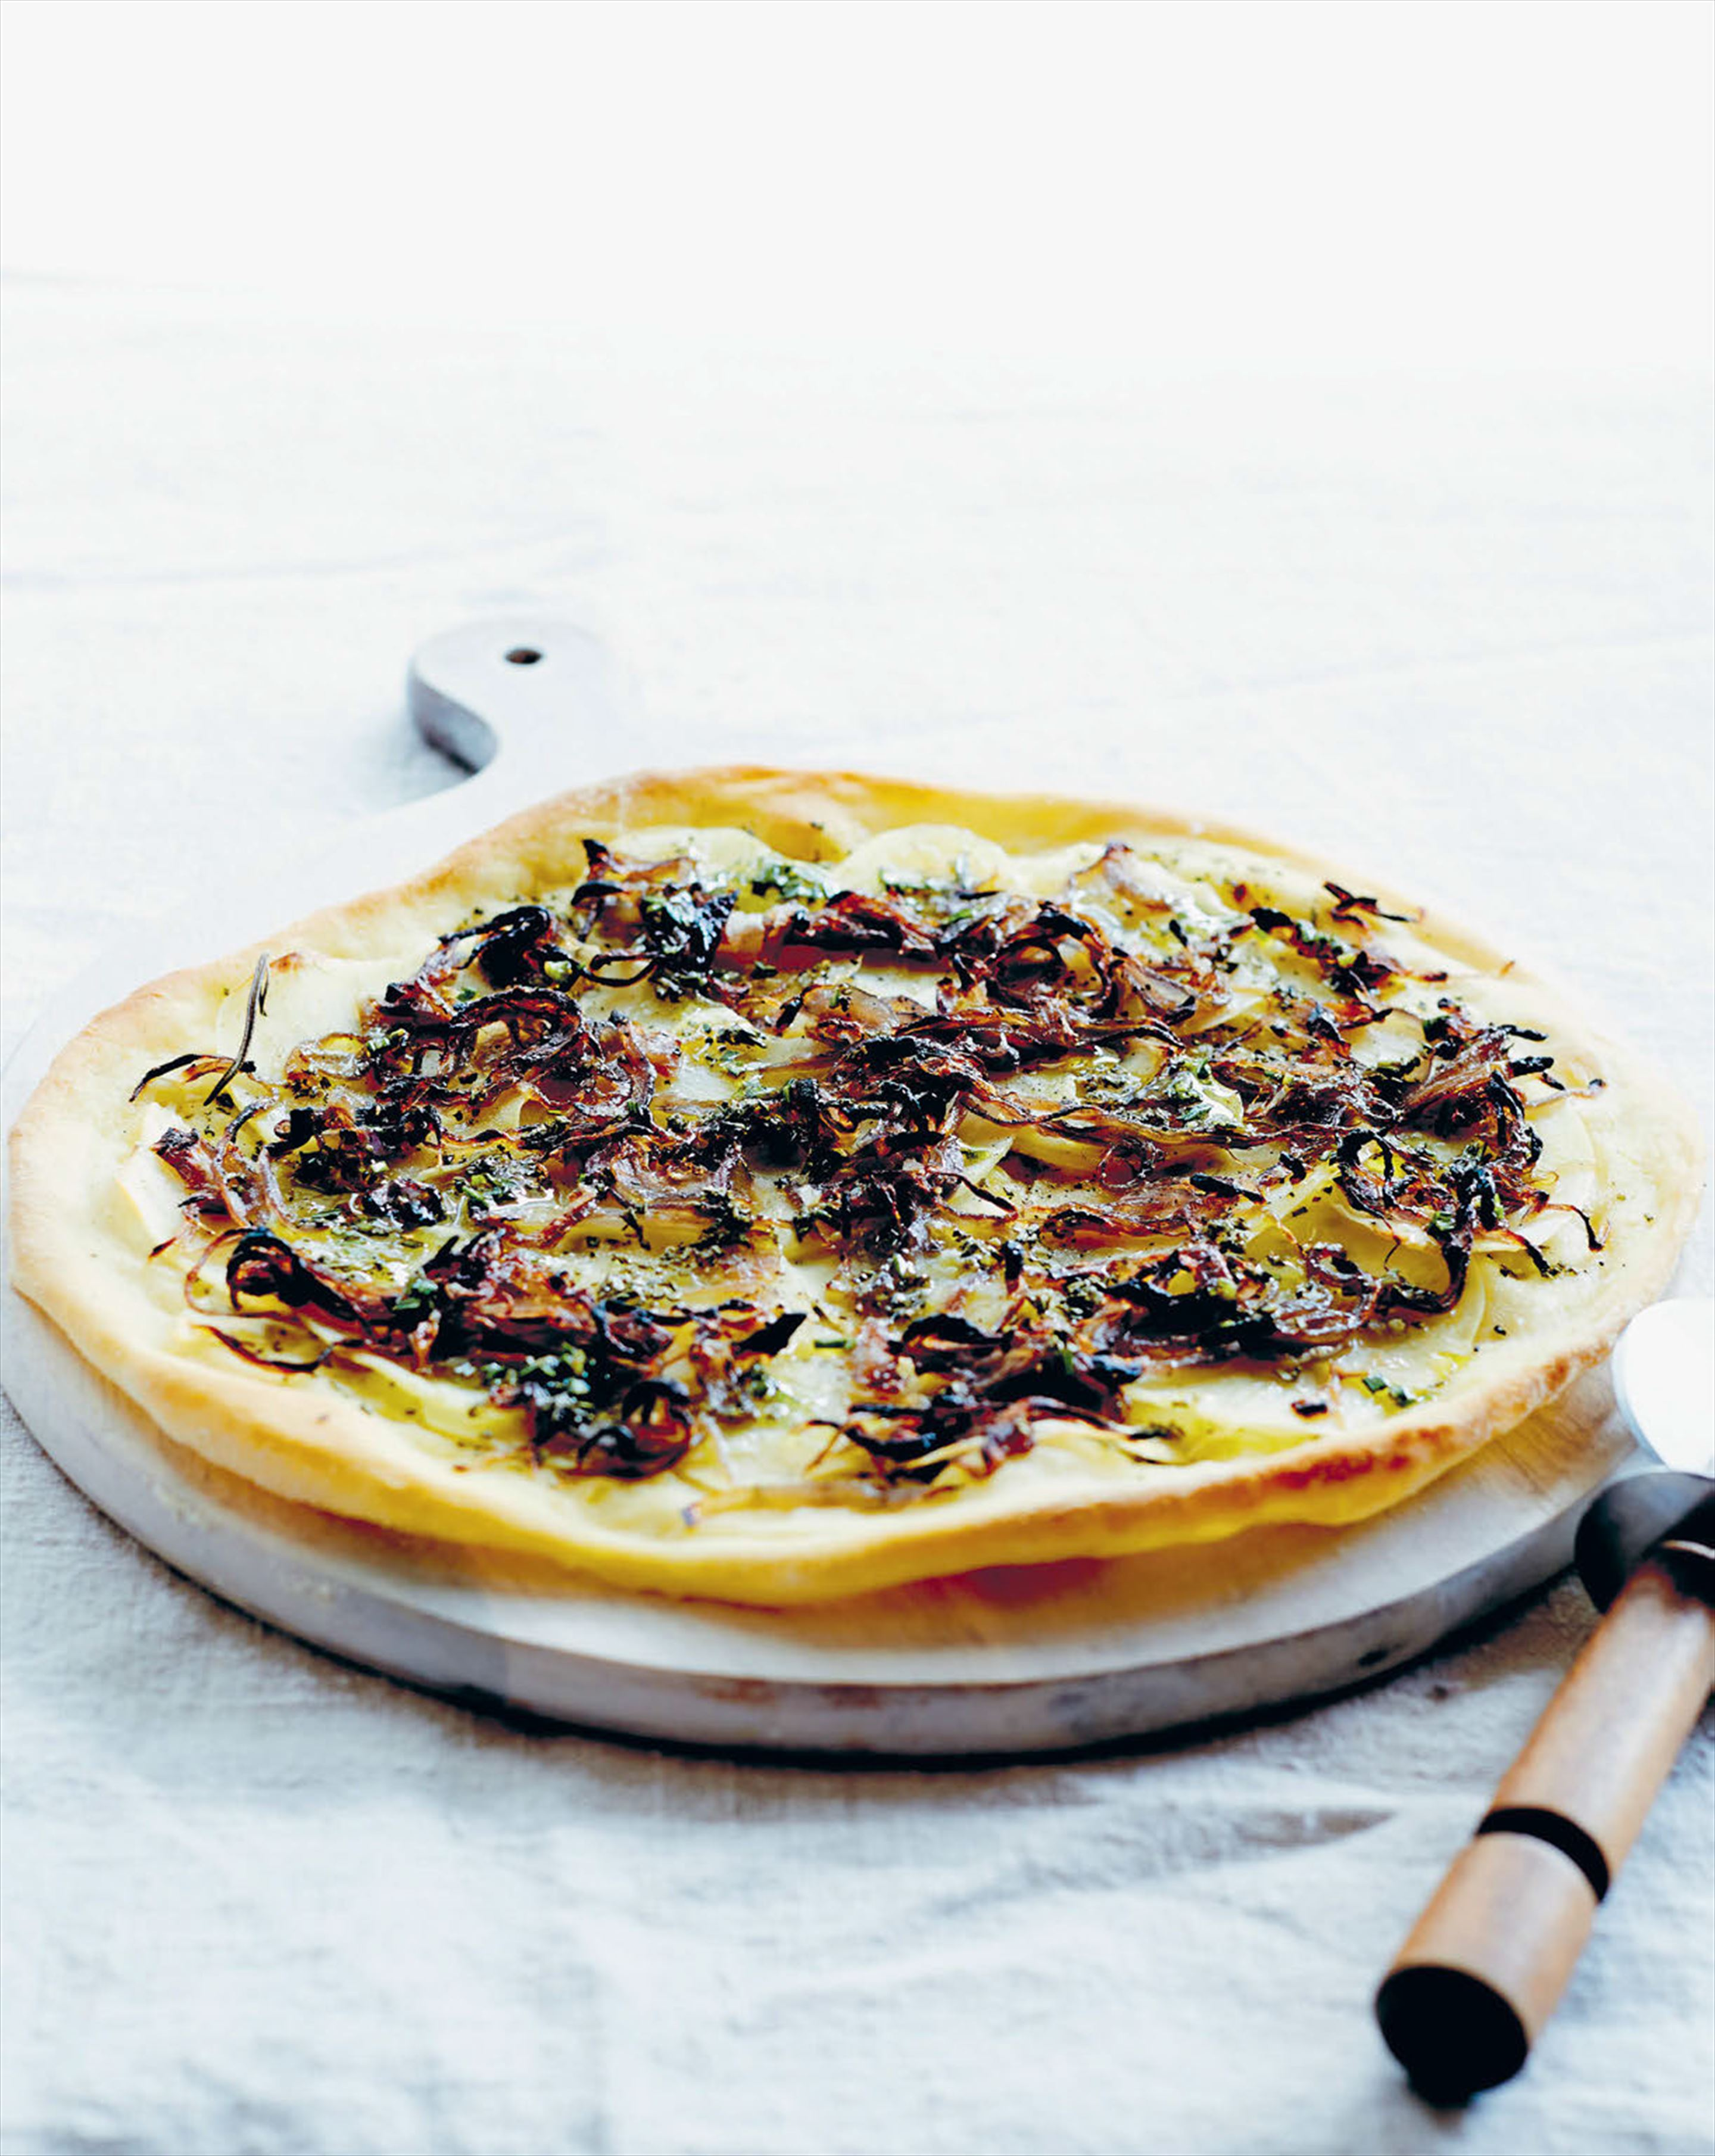 Potato, caramelised onions and rosemary oil pizza